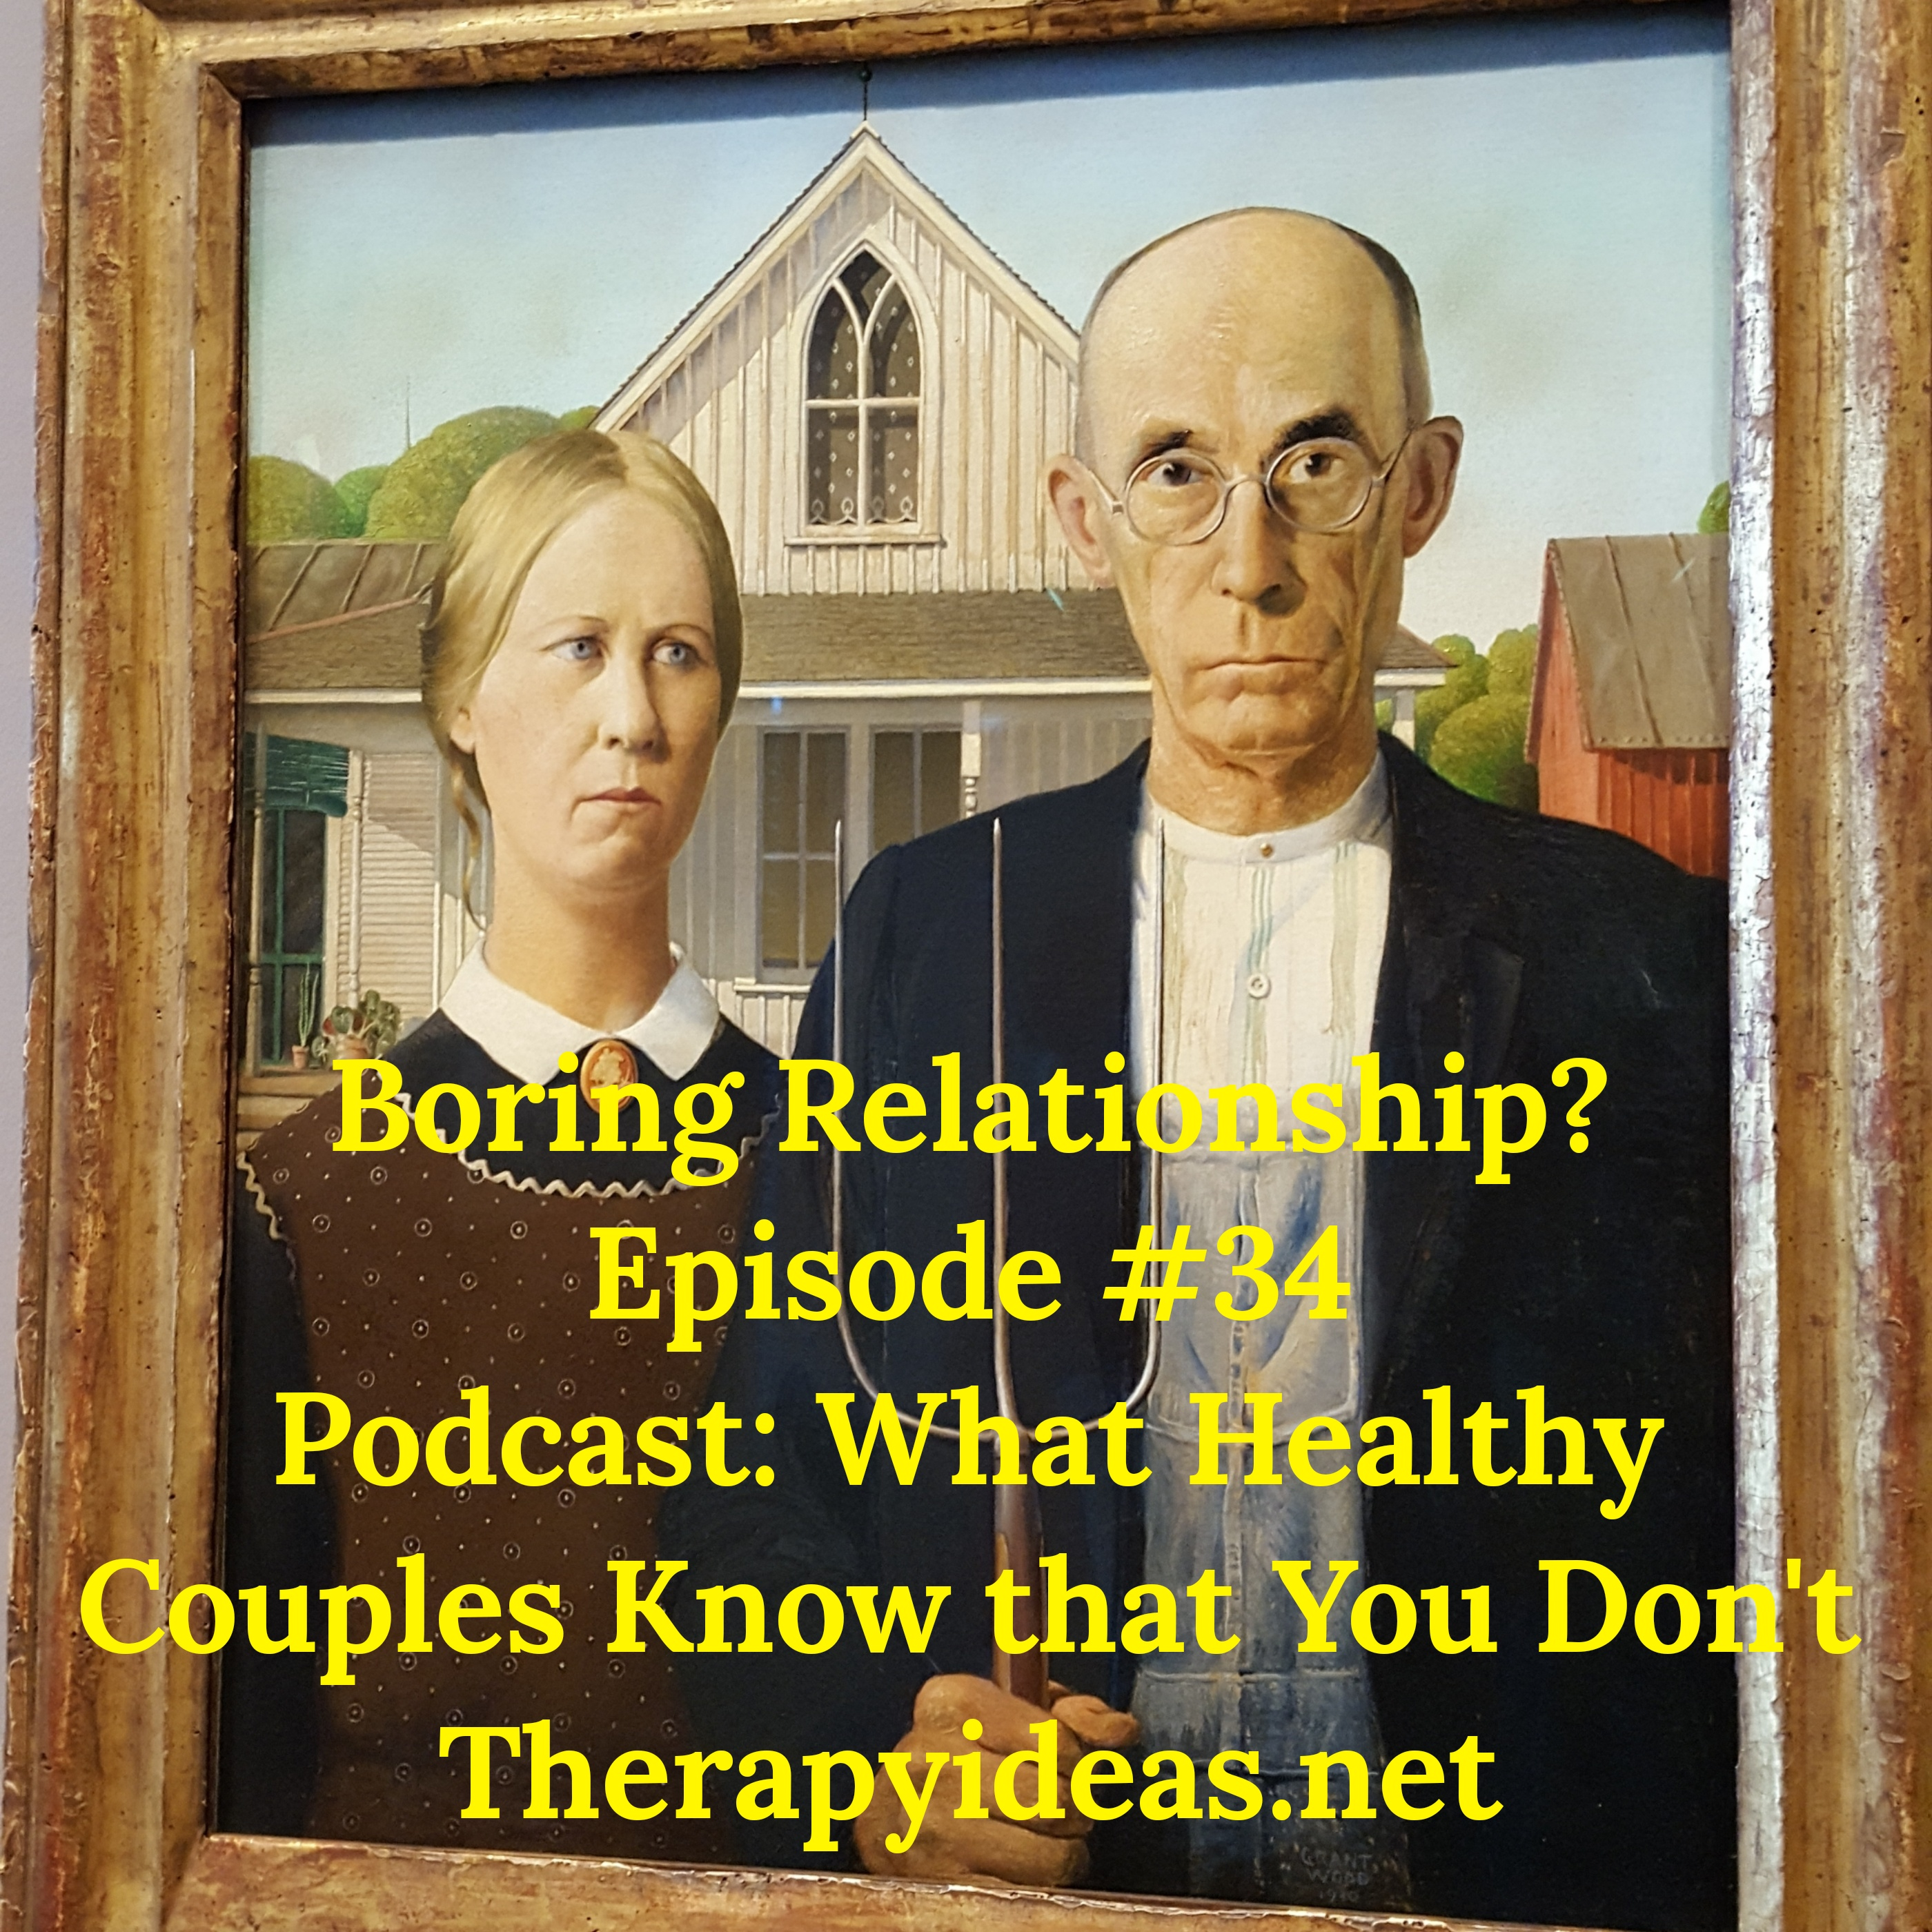 What Healthy Couples Know That You Don't - Boring Relationship? How to get Out of the Rut